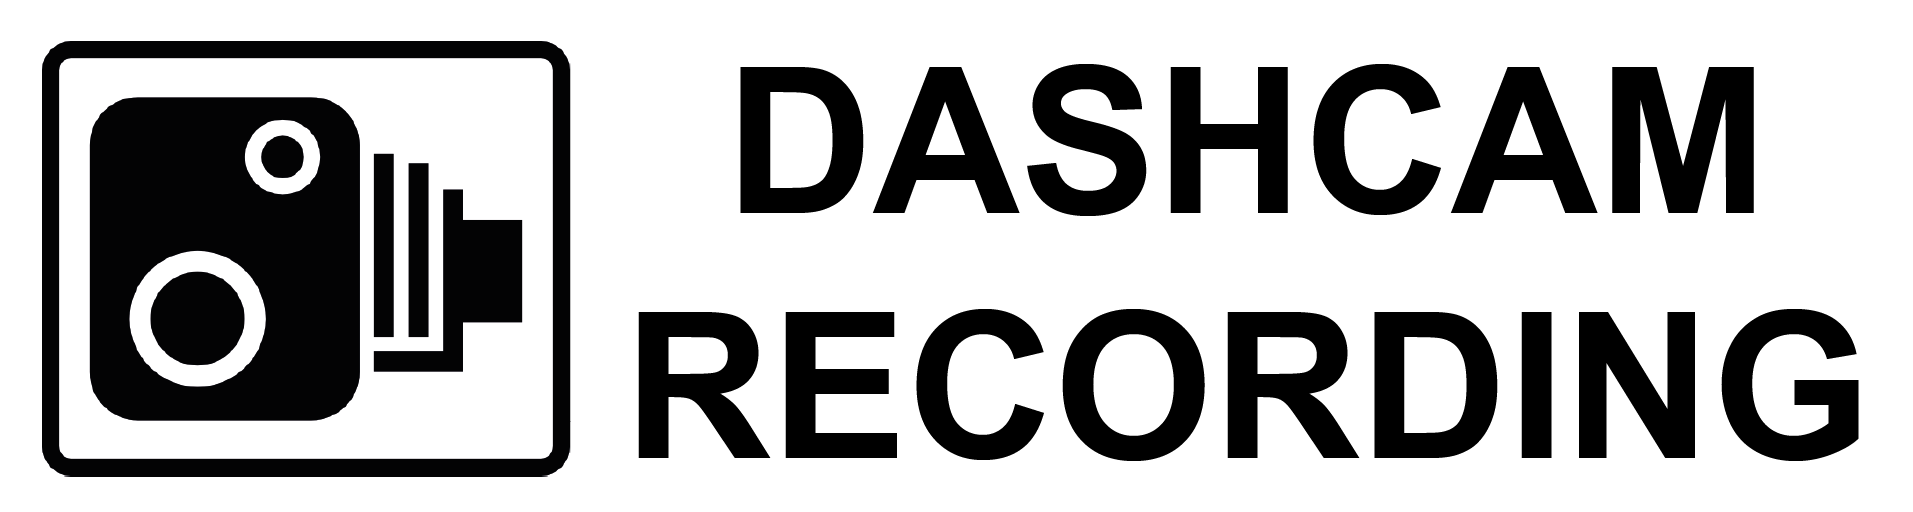 Dashcam recording labels